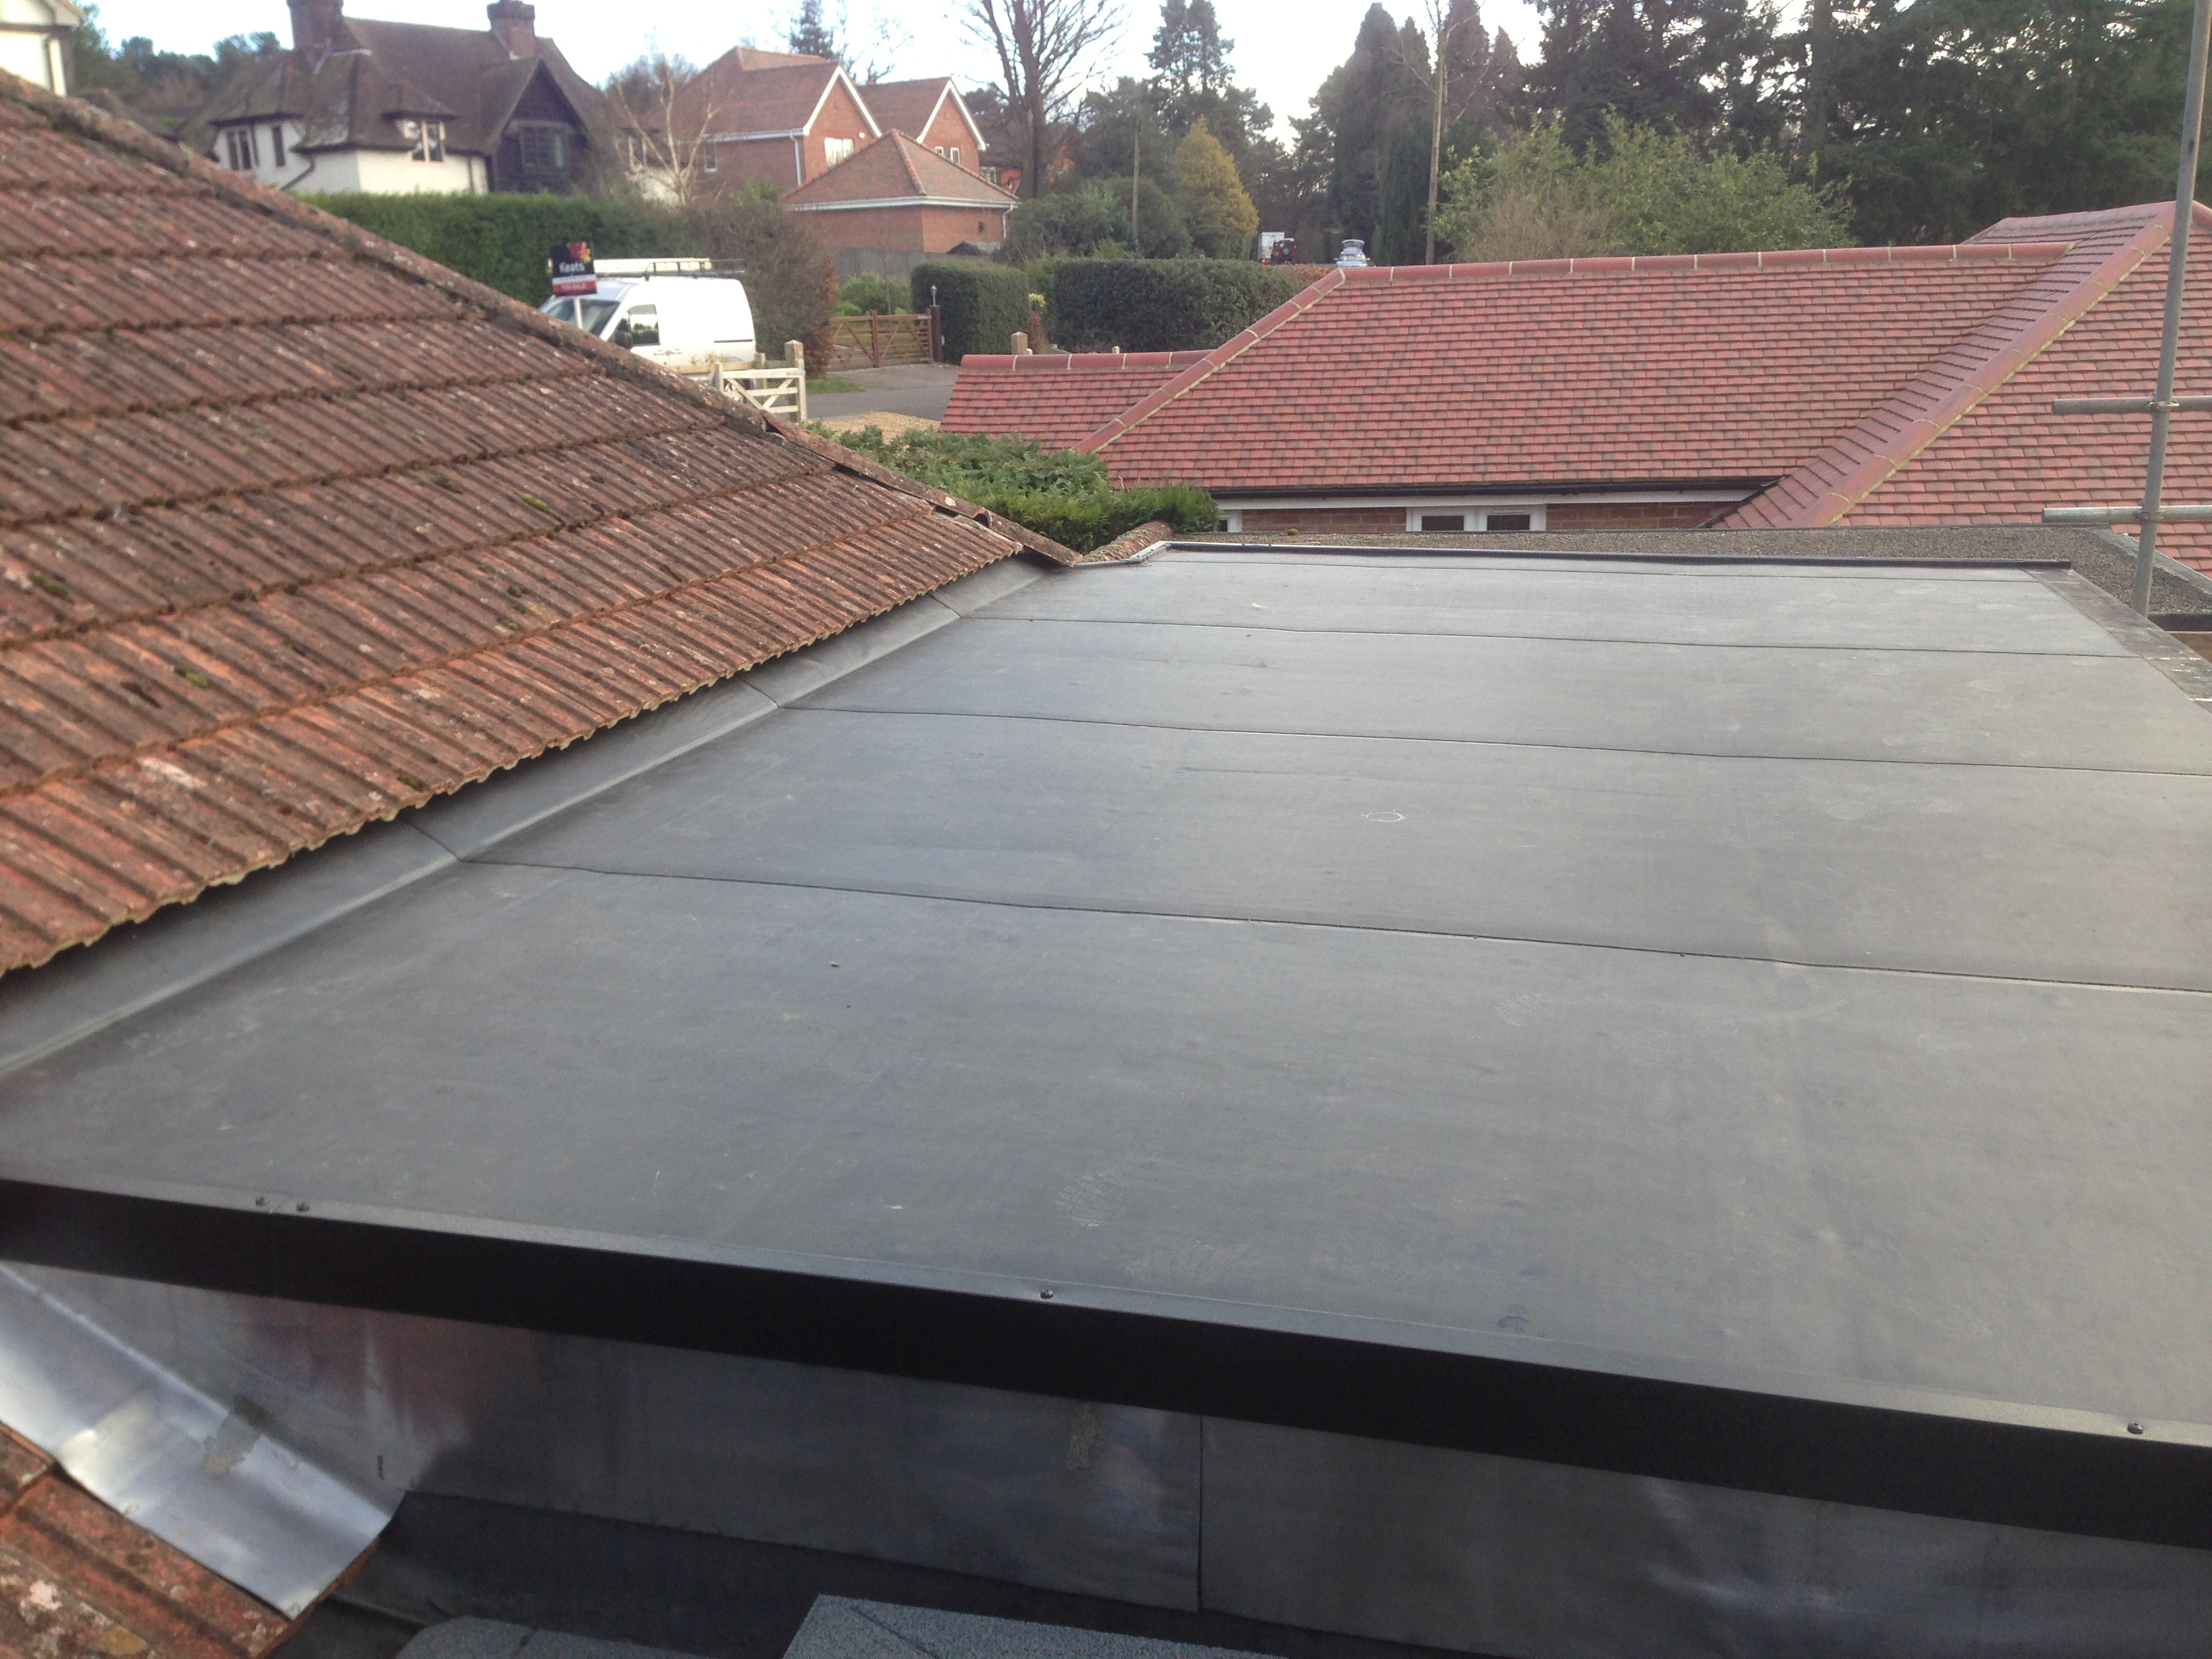 Epdm roofs epdm roofing - Advantages epdm rubber roofing ...